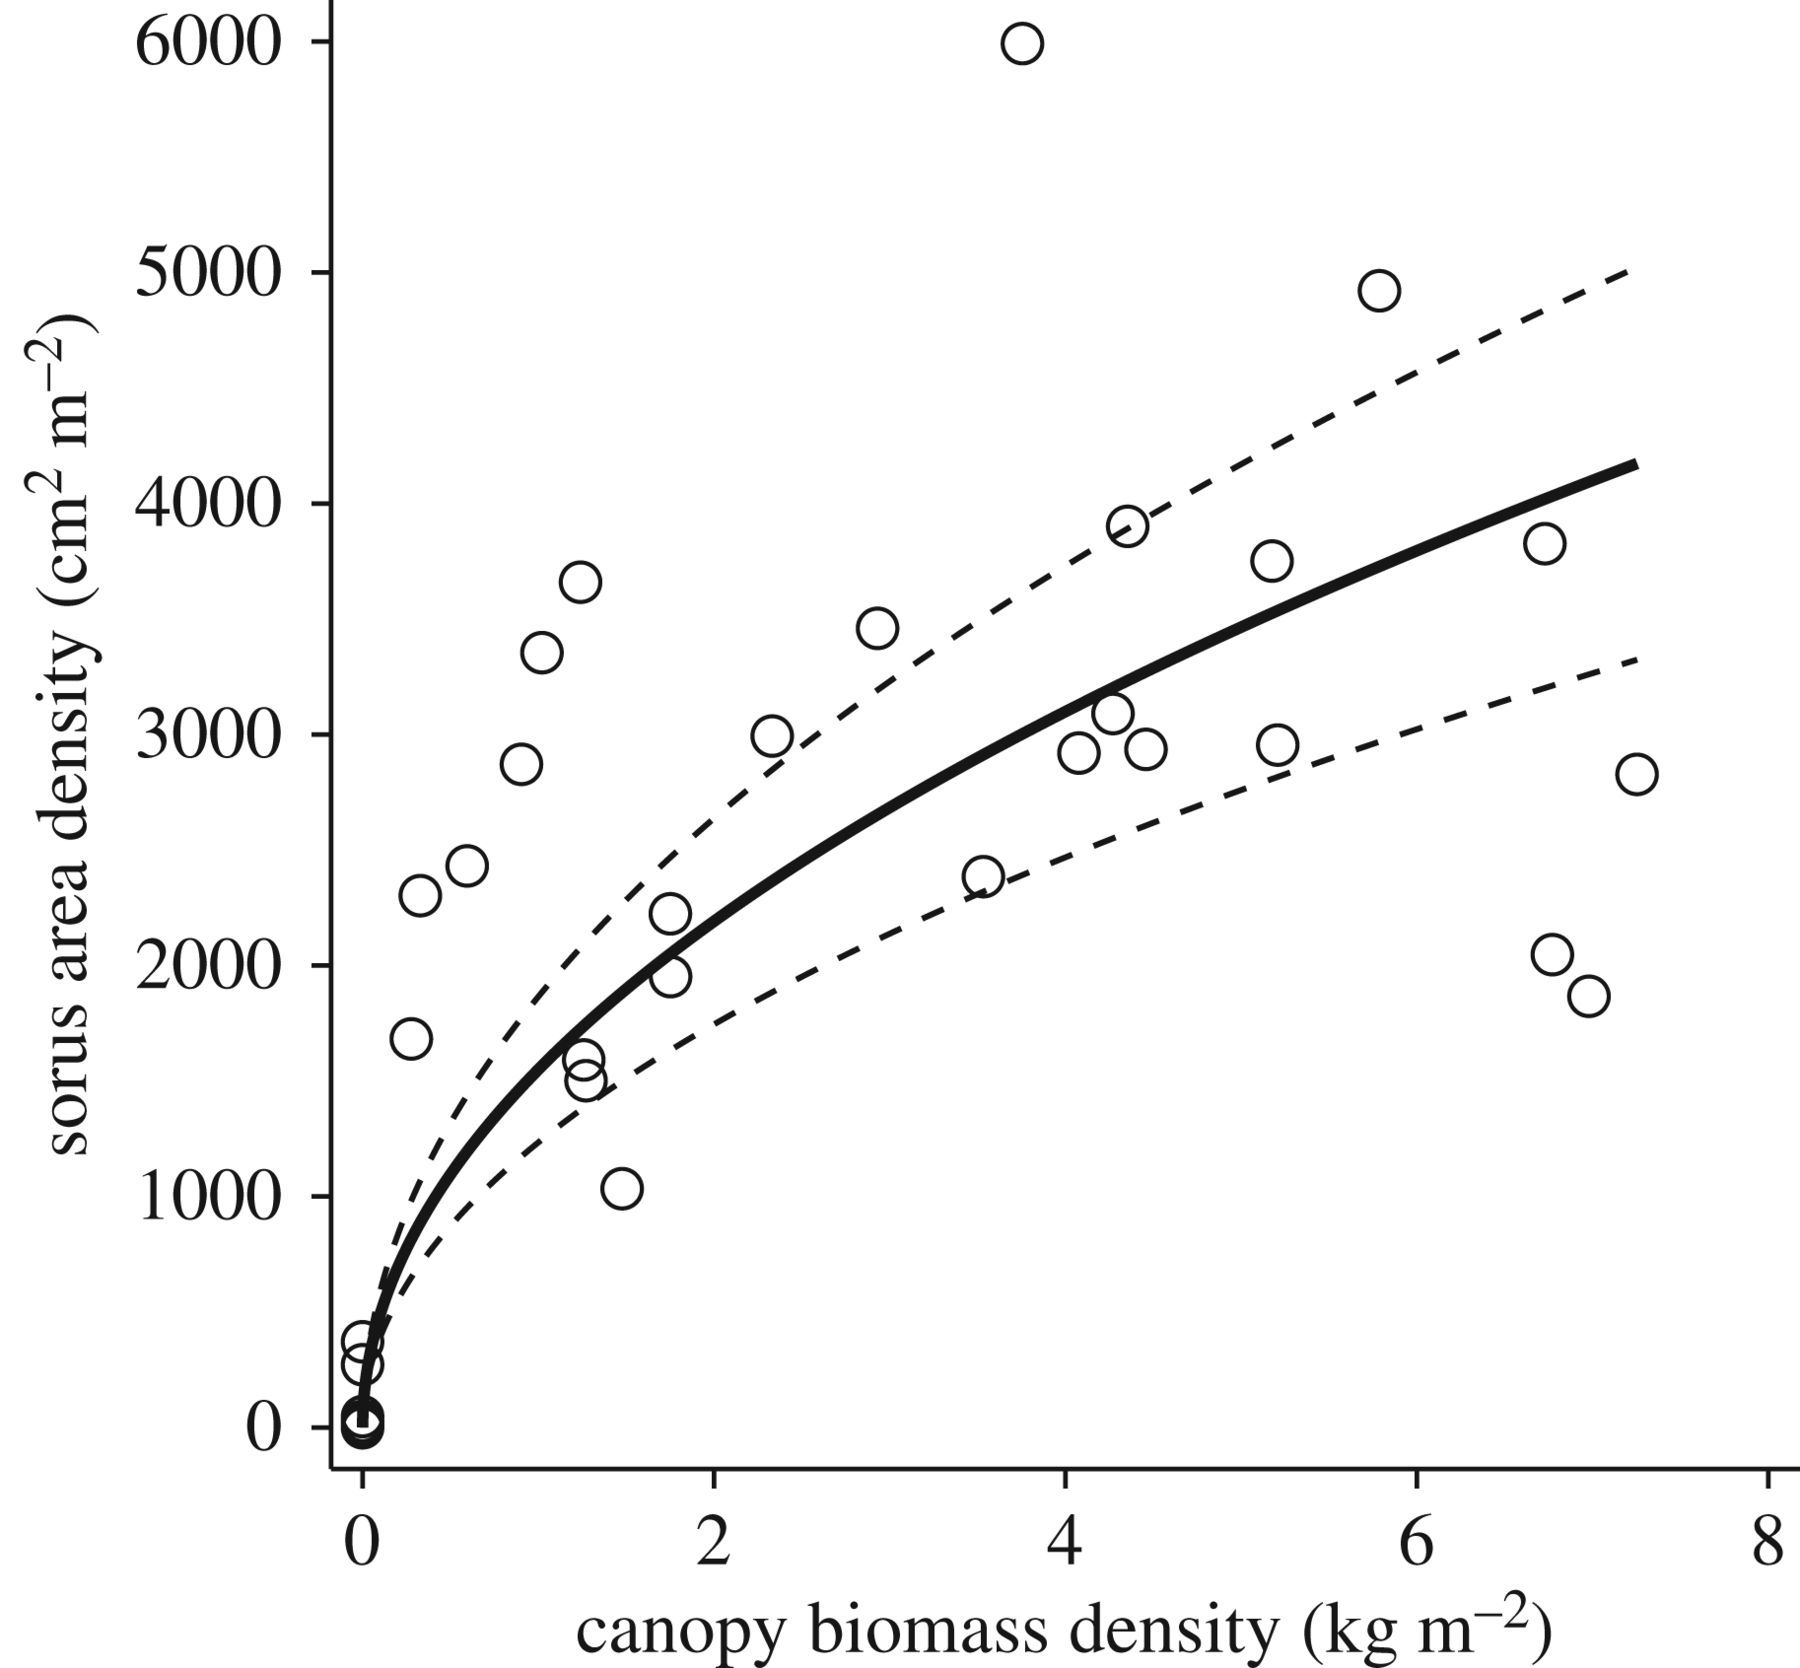 Fluctuations in population fecundity drive variation in